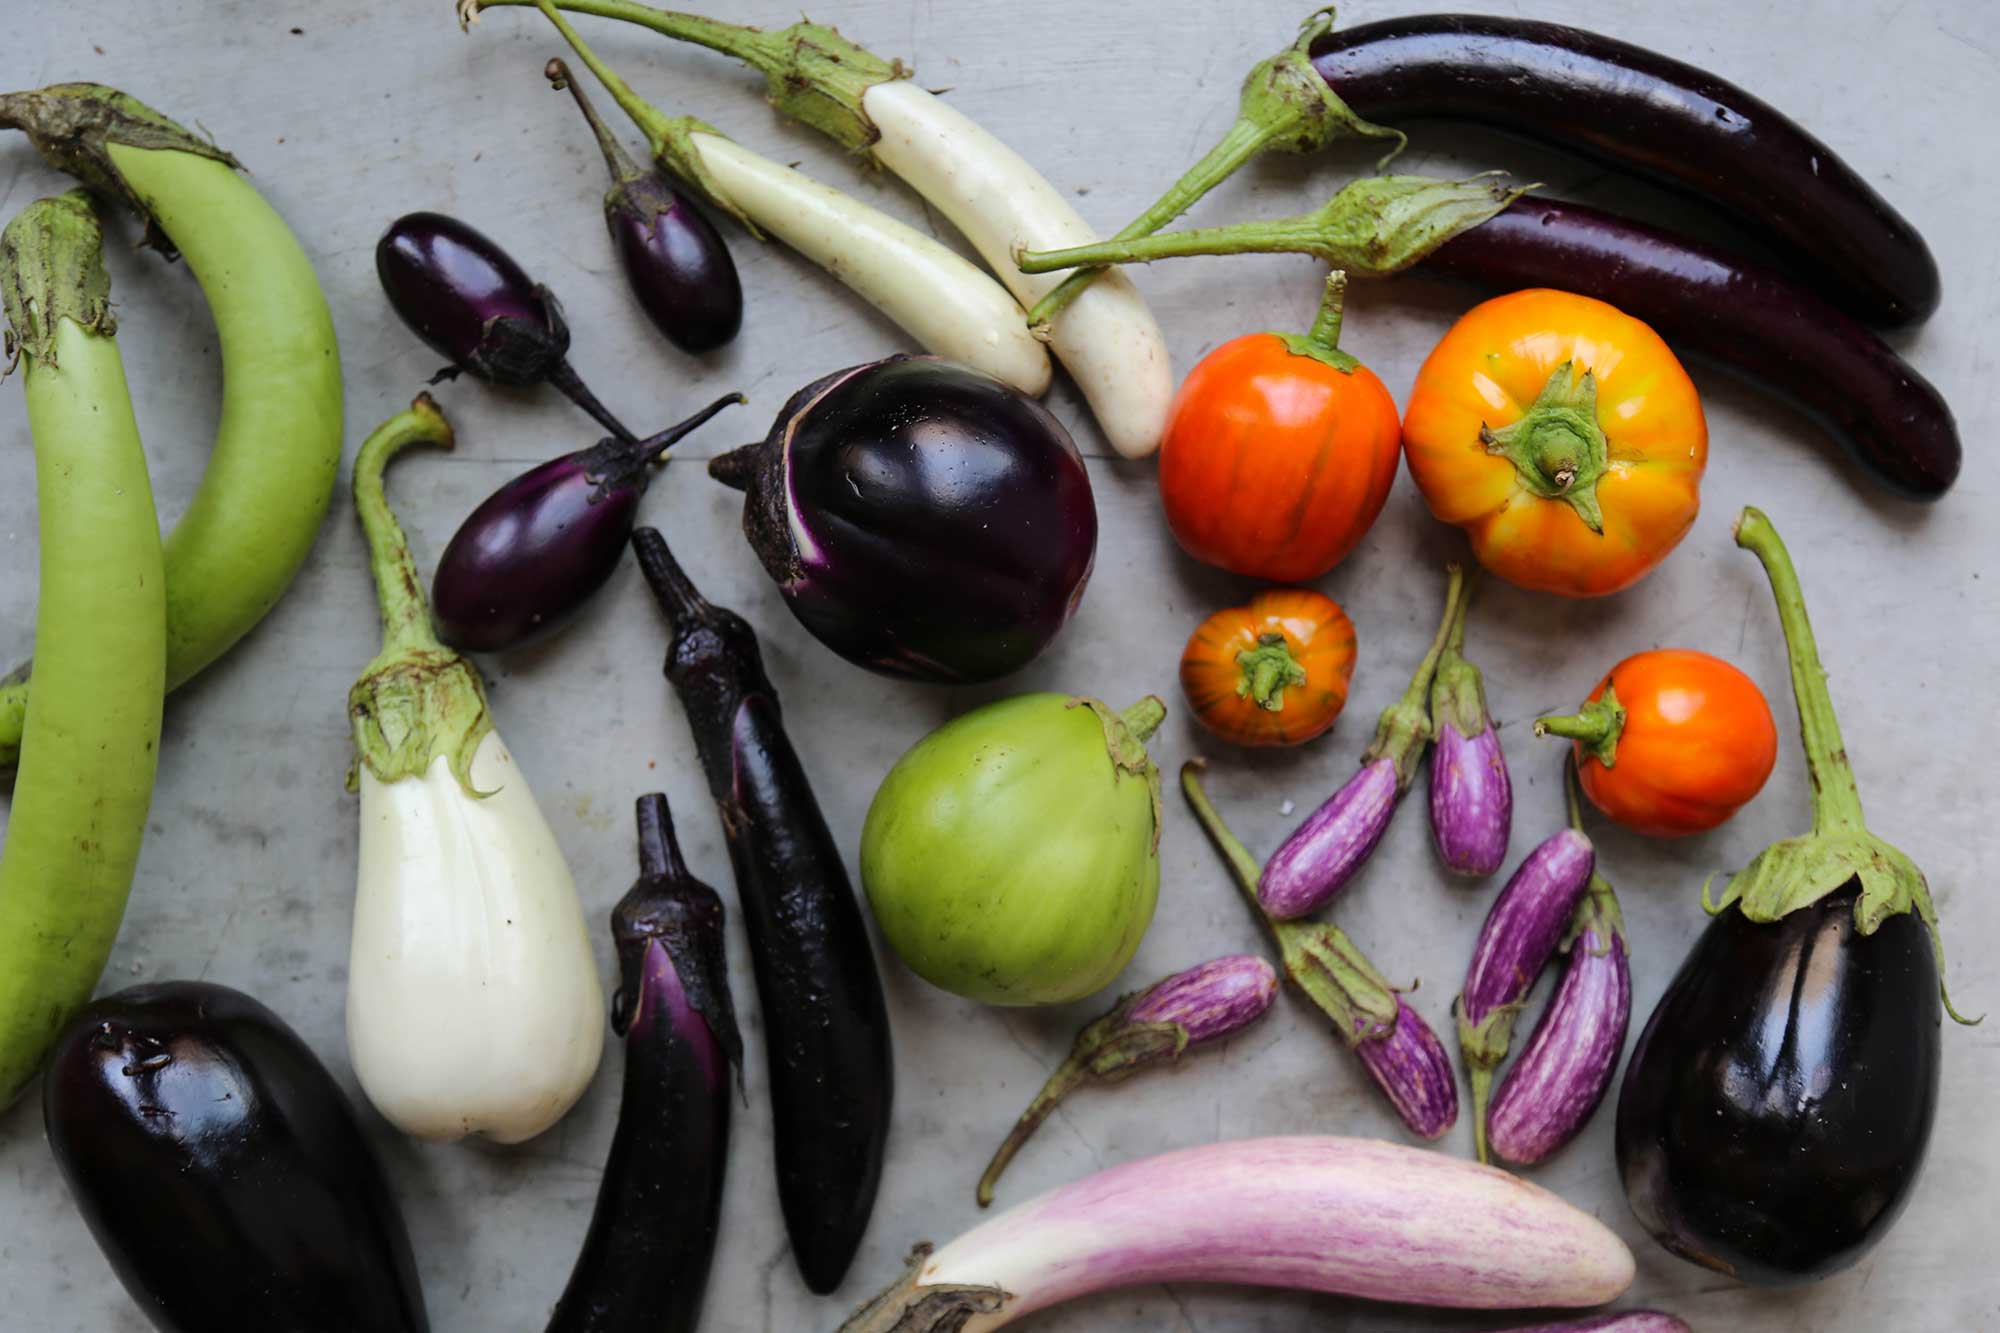 Eggplants Have a Weird, Dysfunctional Family. Come Meet Them.